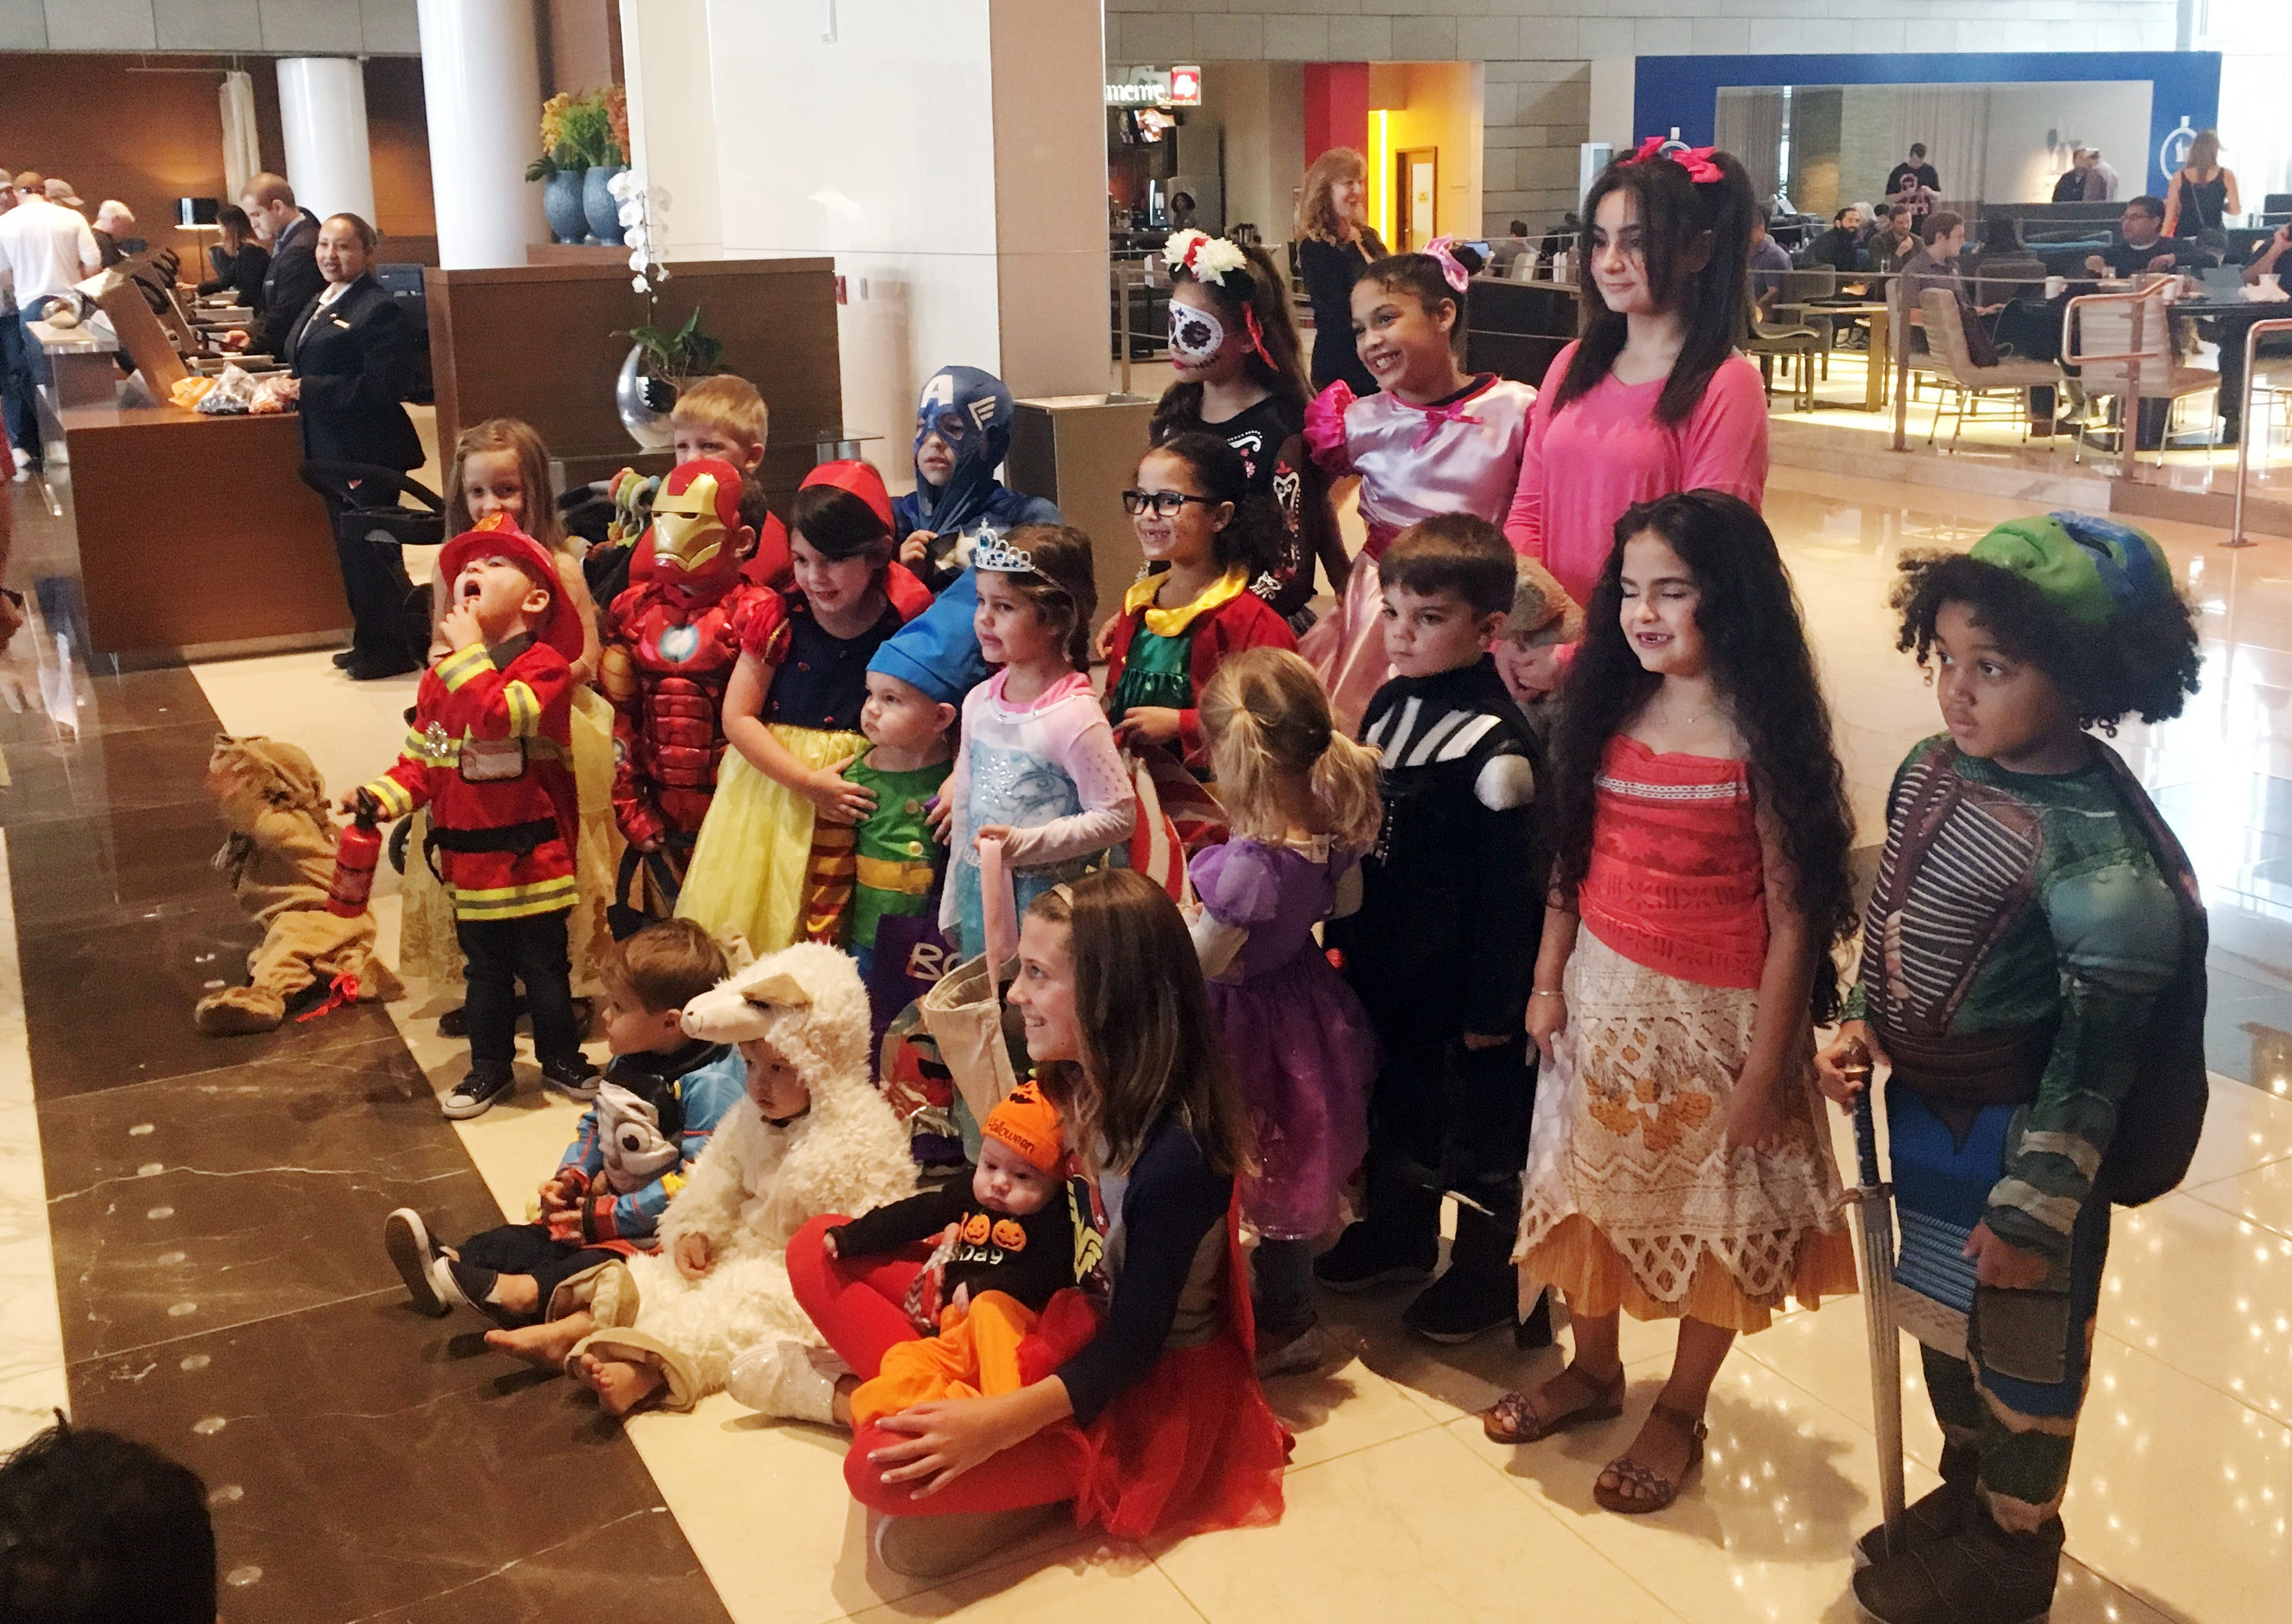 Children of the Houston Astros baseball team pose for a photo in Halloween costumes in the  sc 1 st  USA Today & Trick or treat: For Astros kids costumes before curveballs